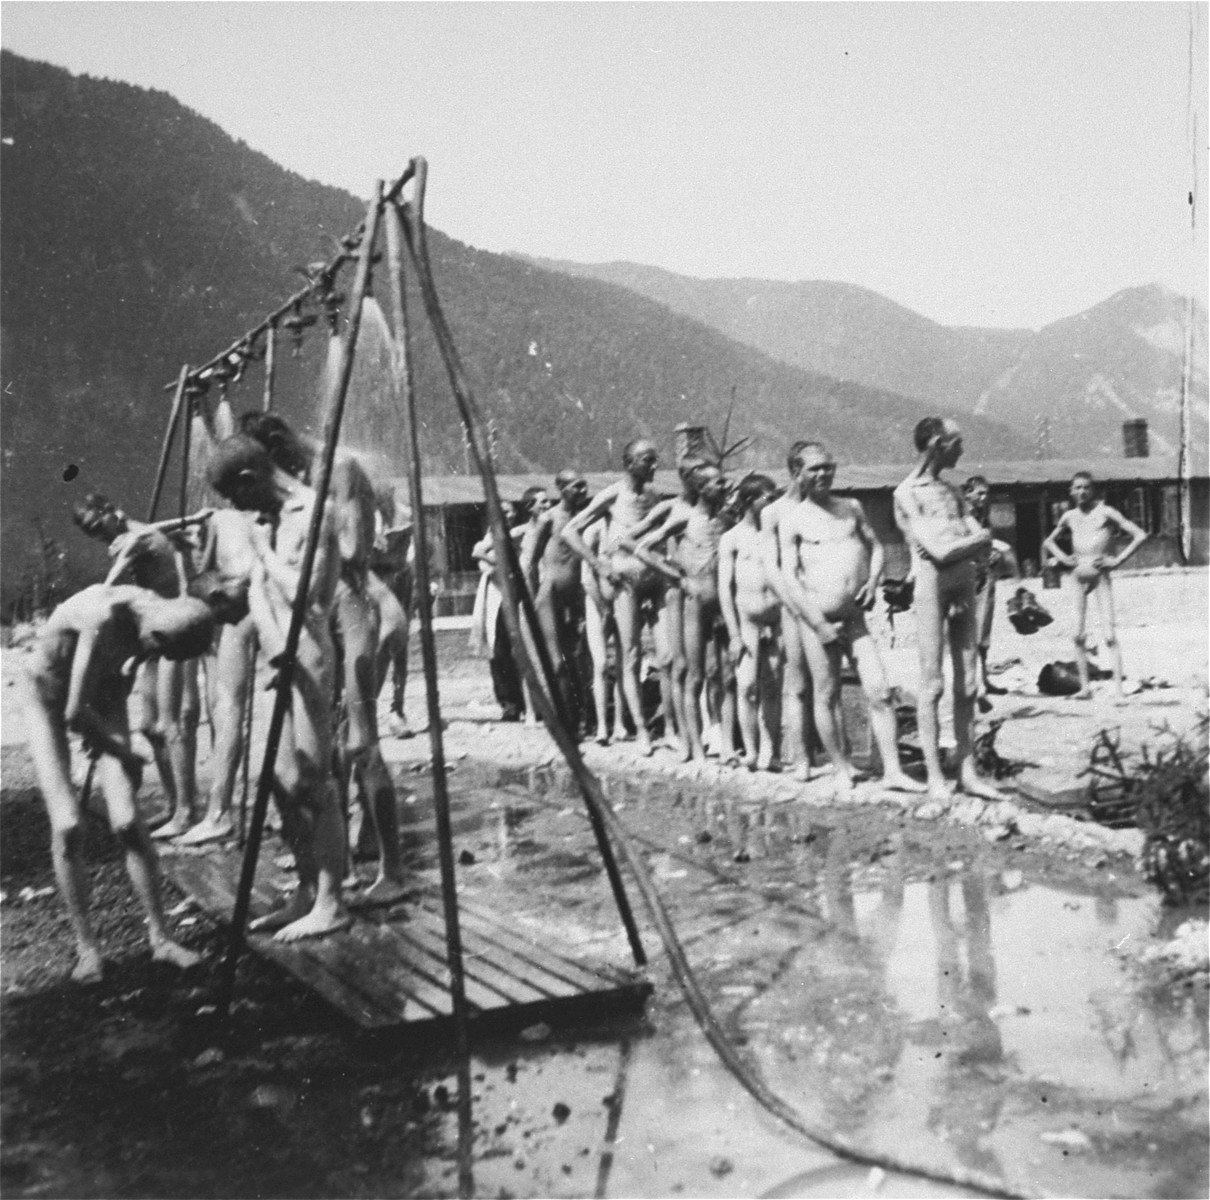 Survivors in Ebensee use the portable shower unit set up for them by personnel of the 30th U.S. Army Field Hospital.